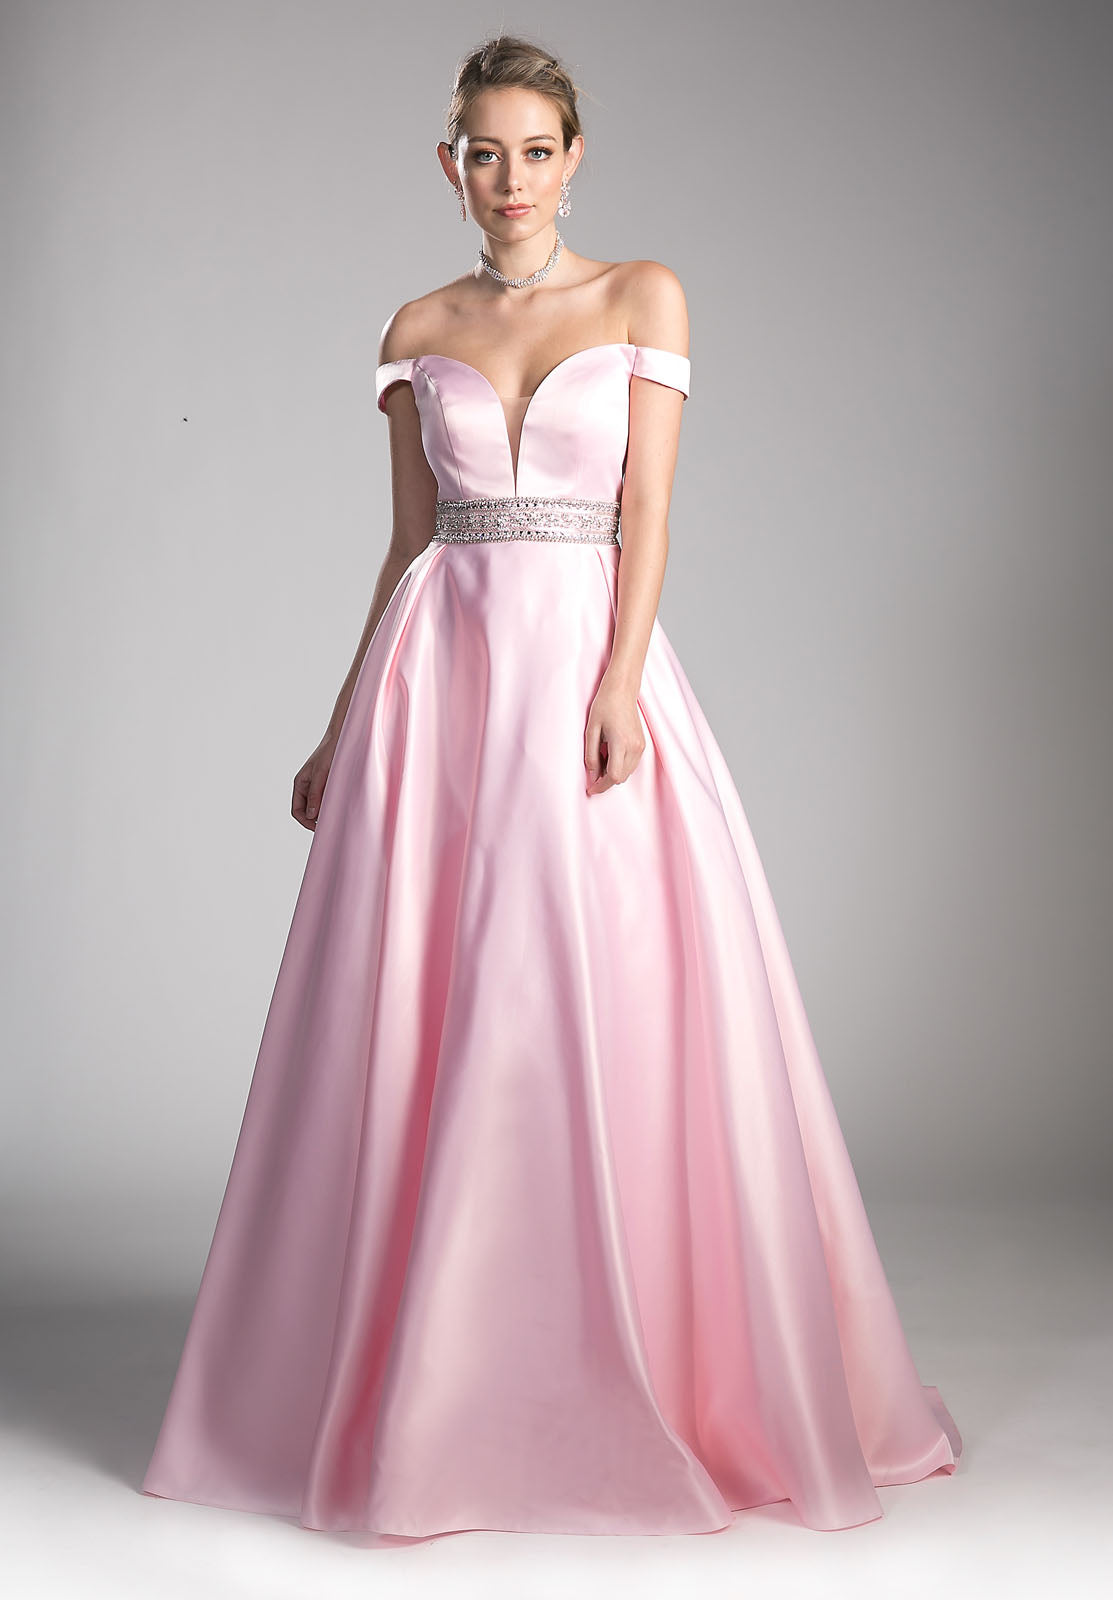 Cinderella Divine 13288 Powder-Pink Off-the-Shoulder Ball Gown ...